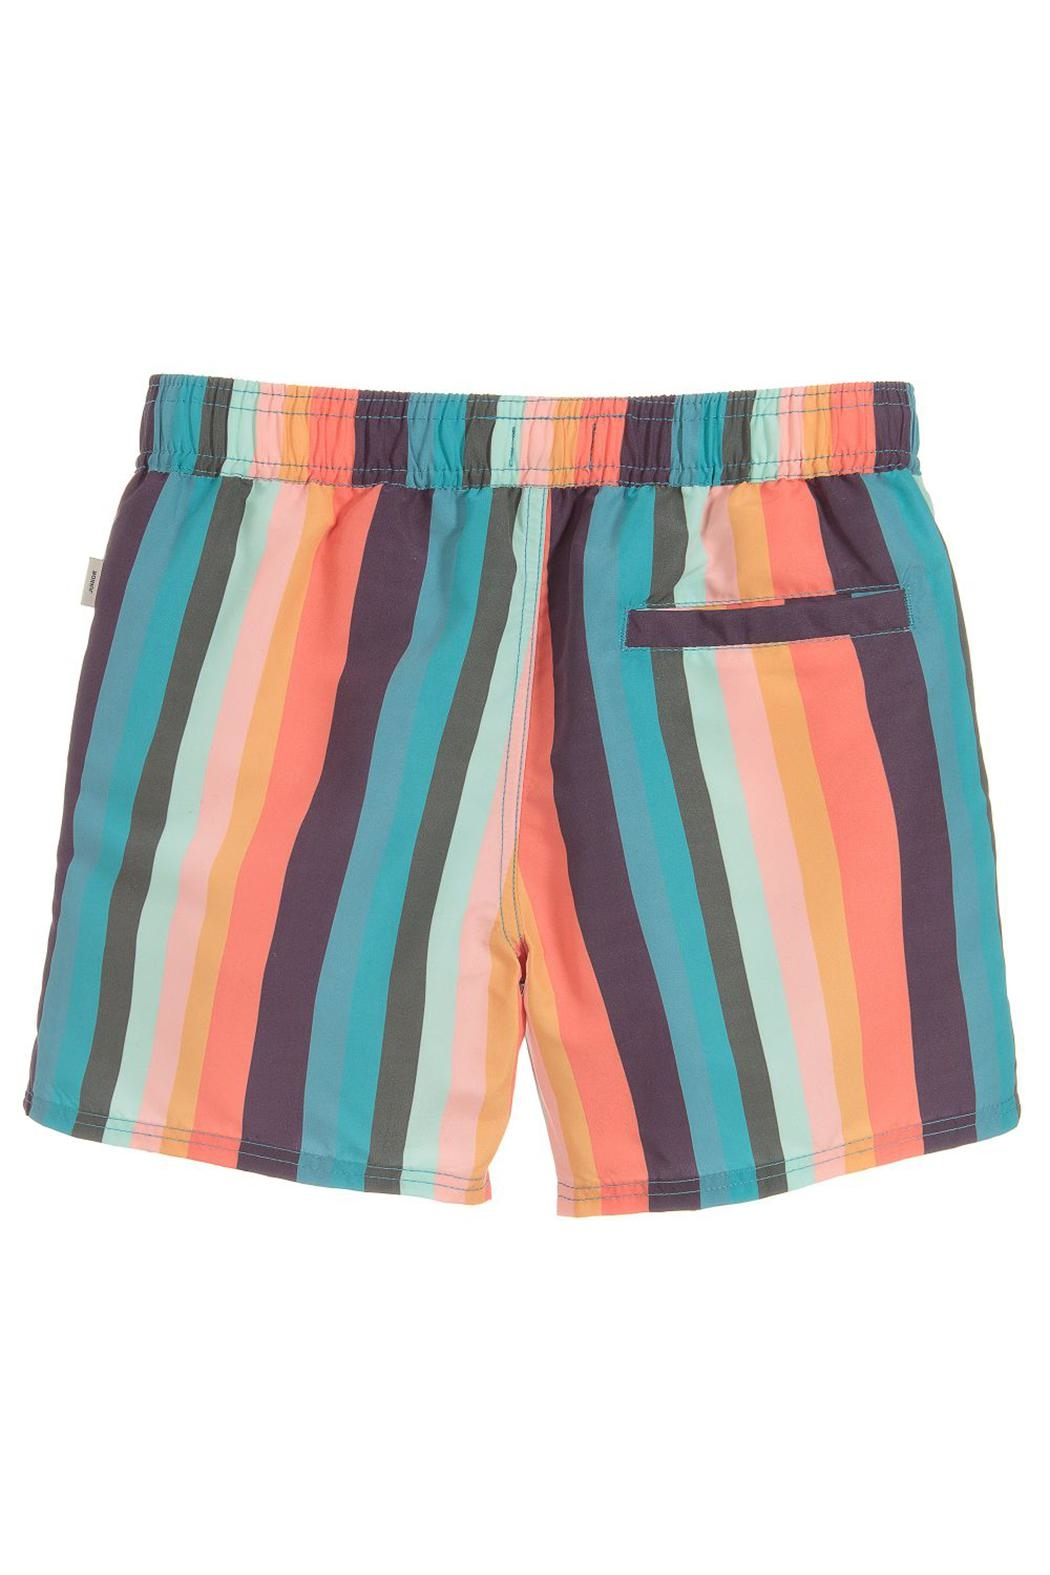 Paul Smith Junior Multicoloured-Striped 'Toshiro' Swim-Shorts - Front Full Image